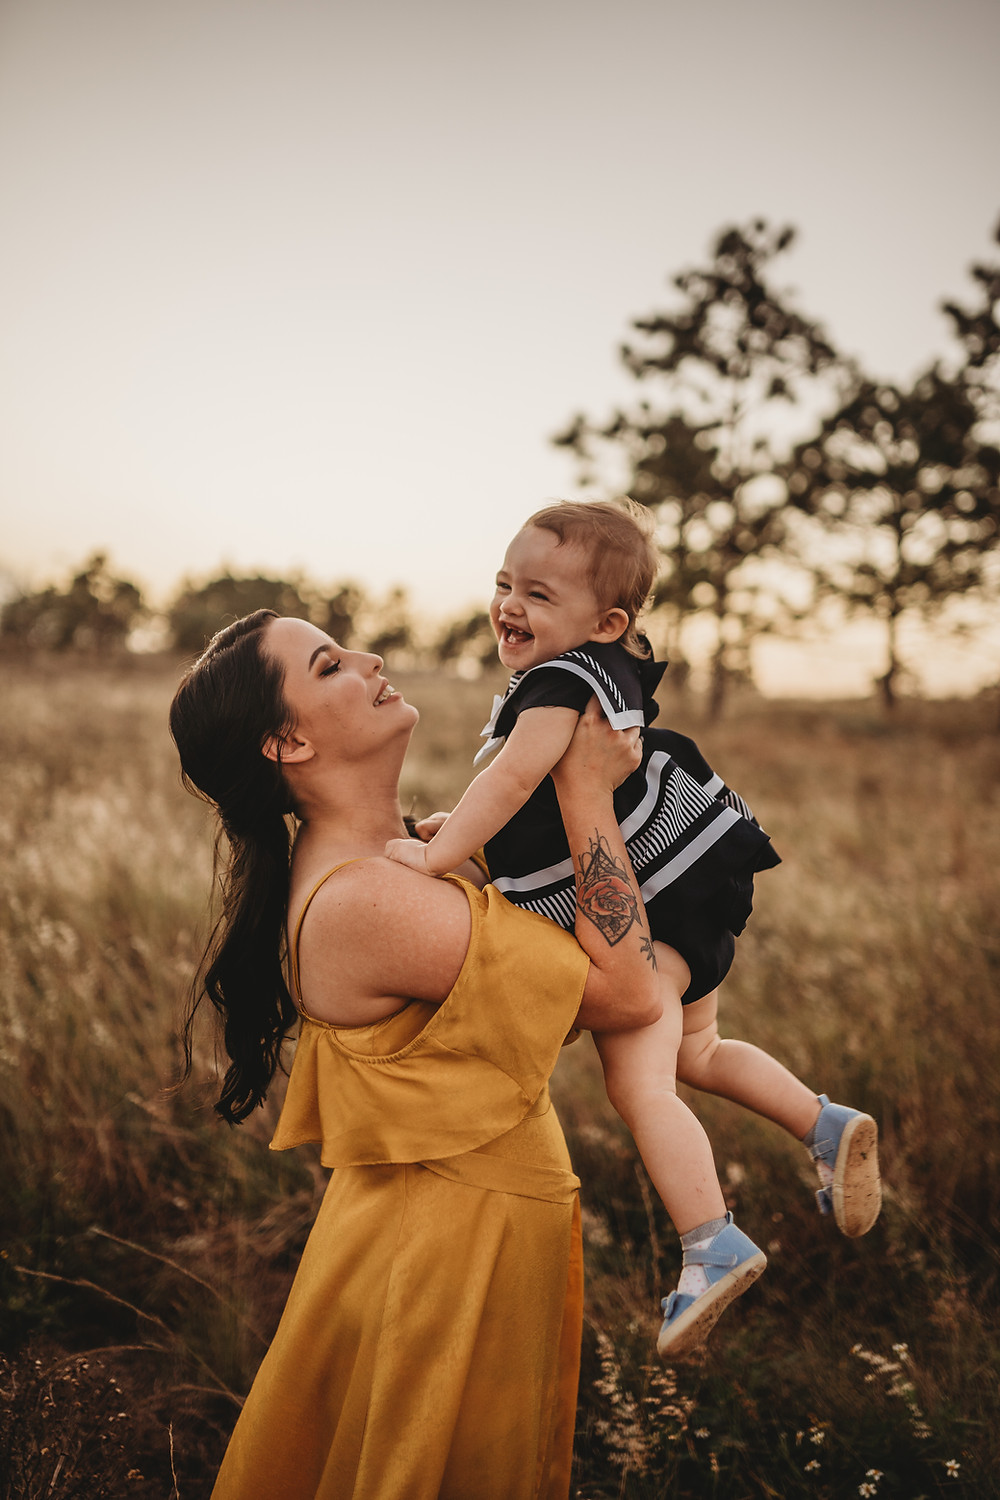 woman holding her baby daughter in a field during sunset